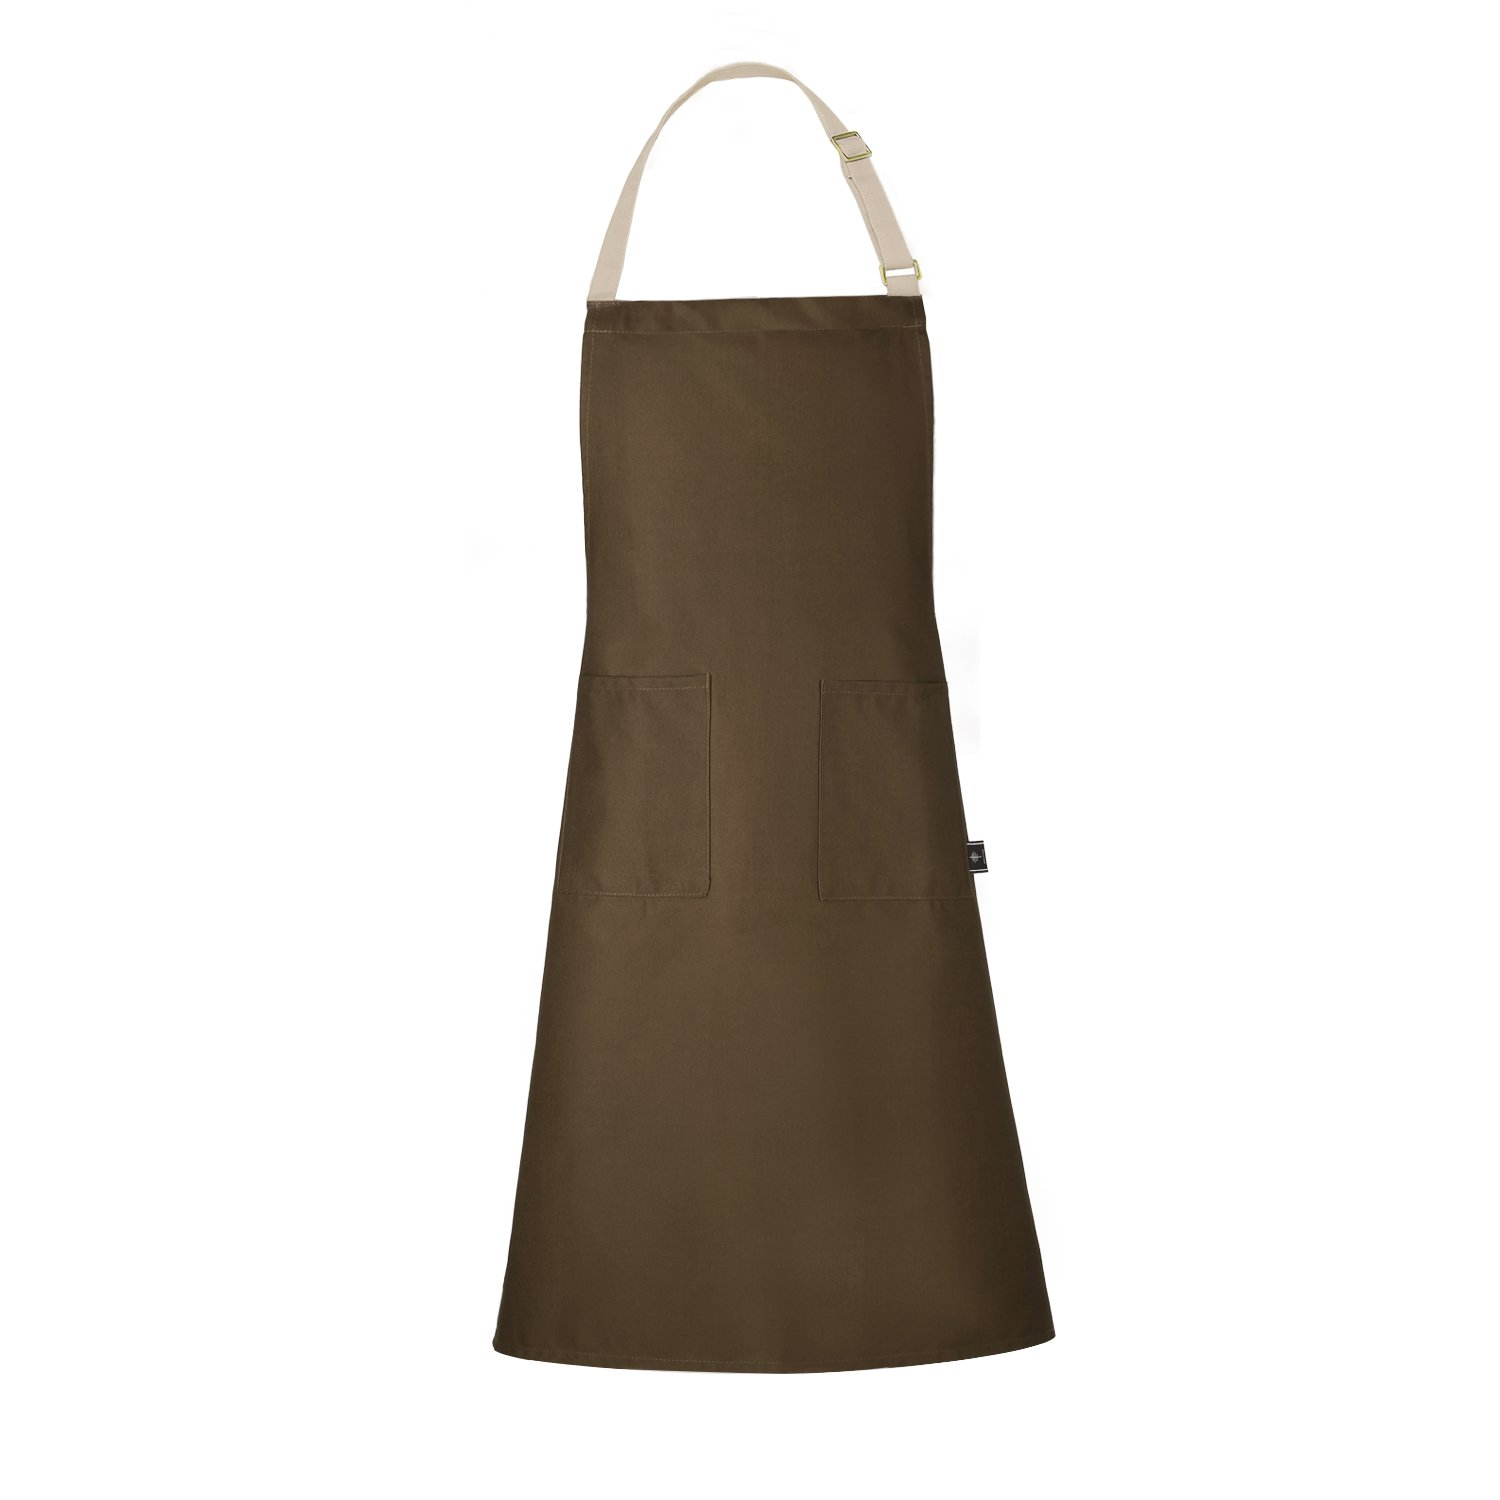 BONTHEE Adjustable Chef Bib Apron Kitchen Grilling Apron for Women Men Chef - Coffee Others